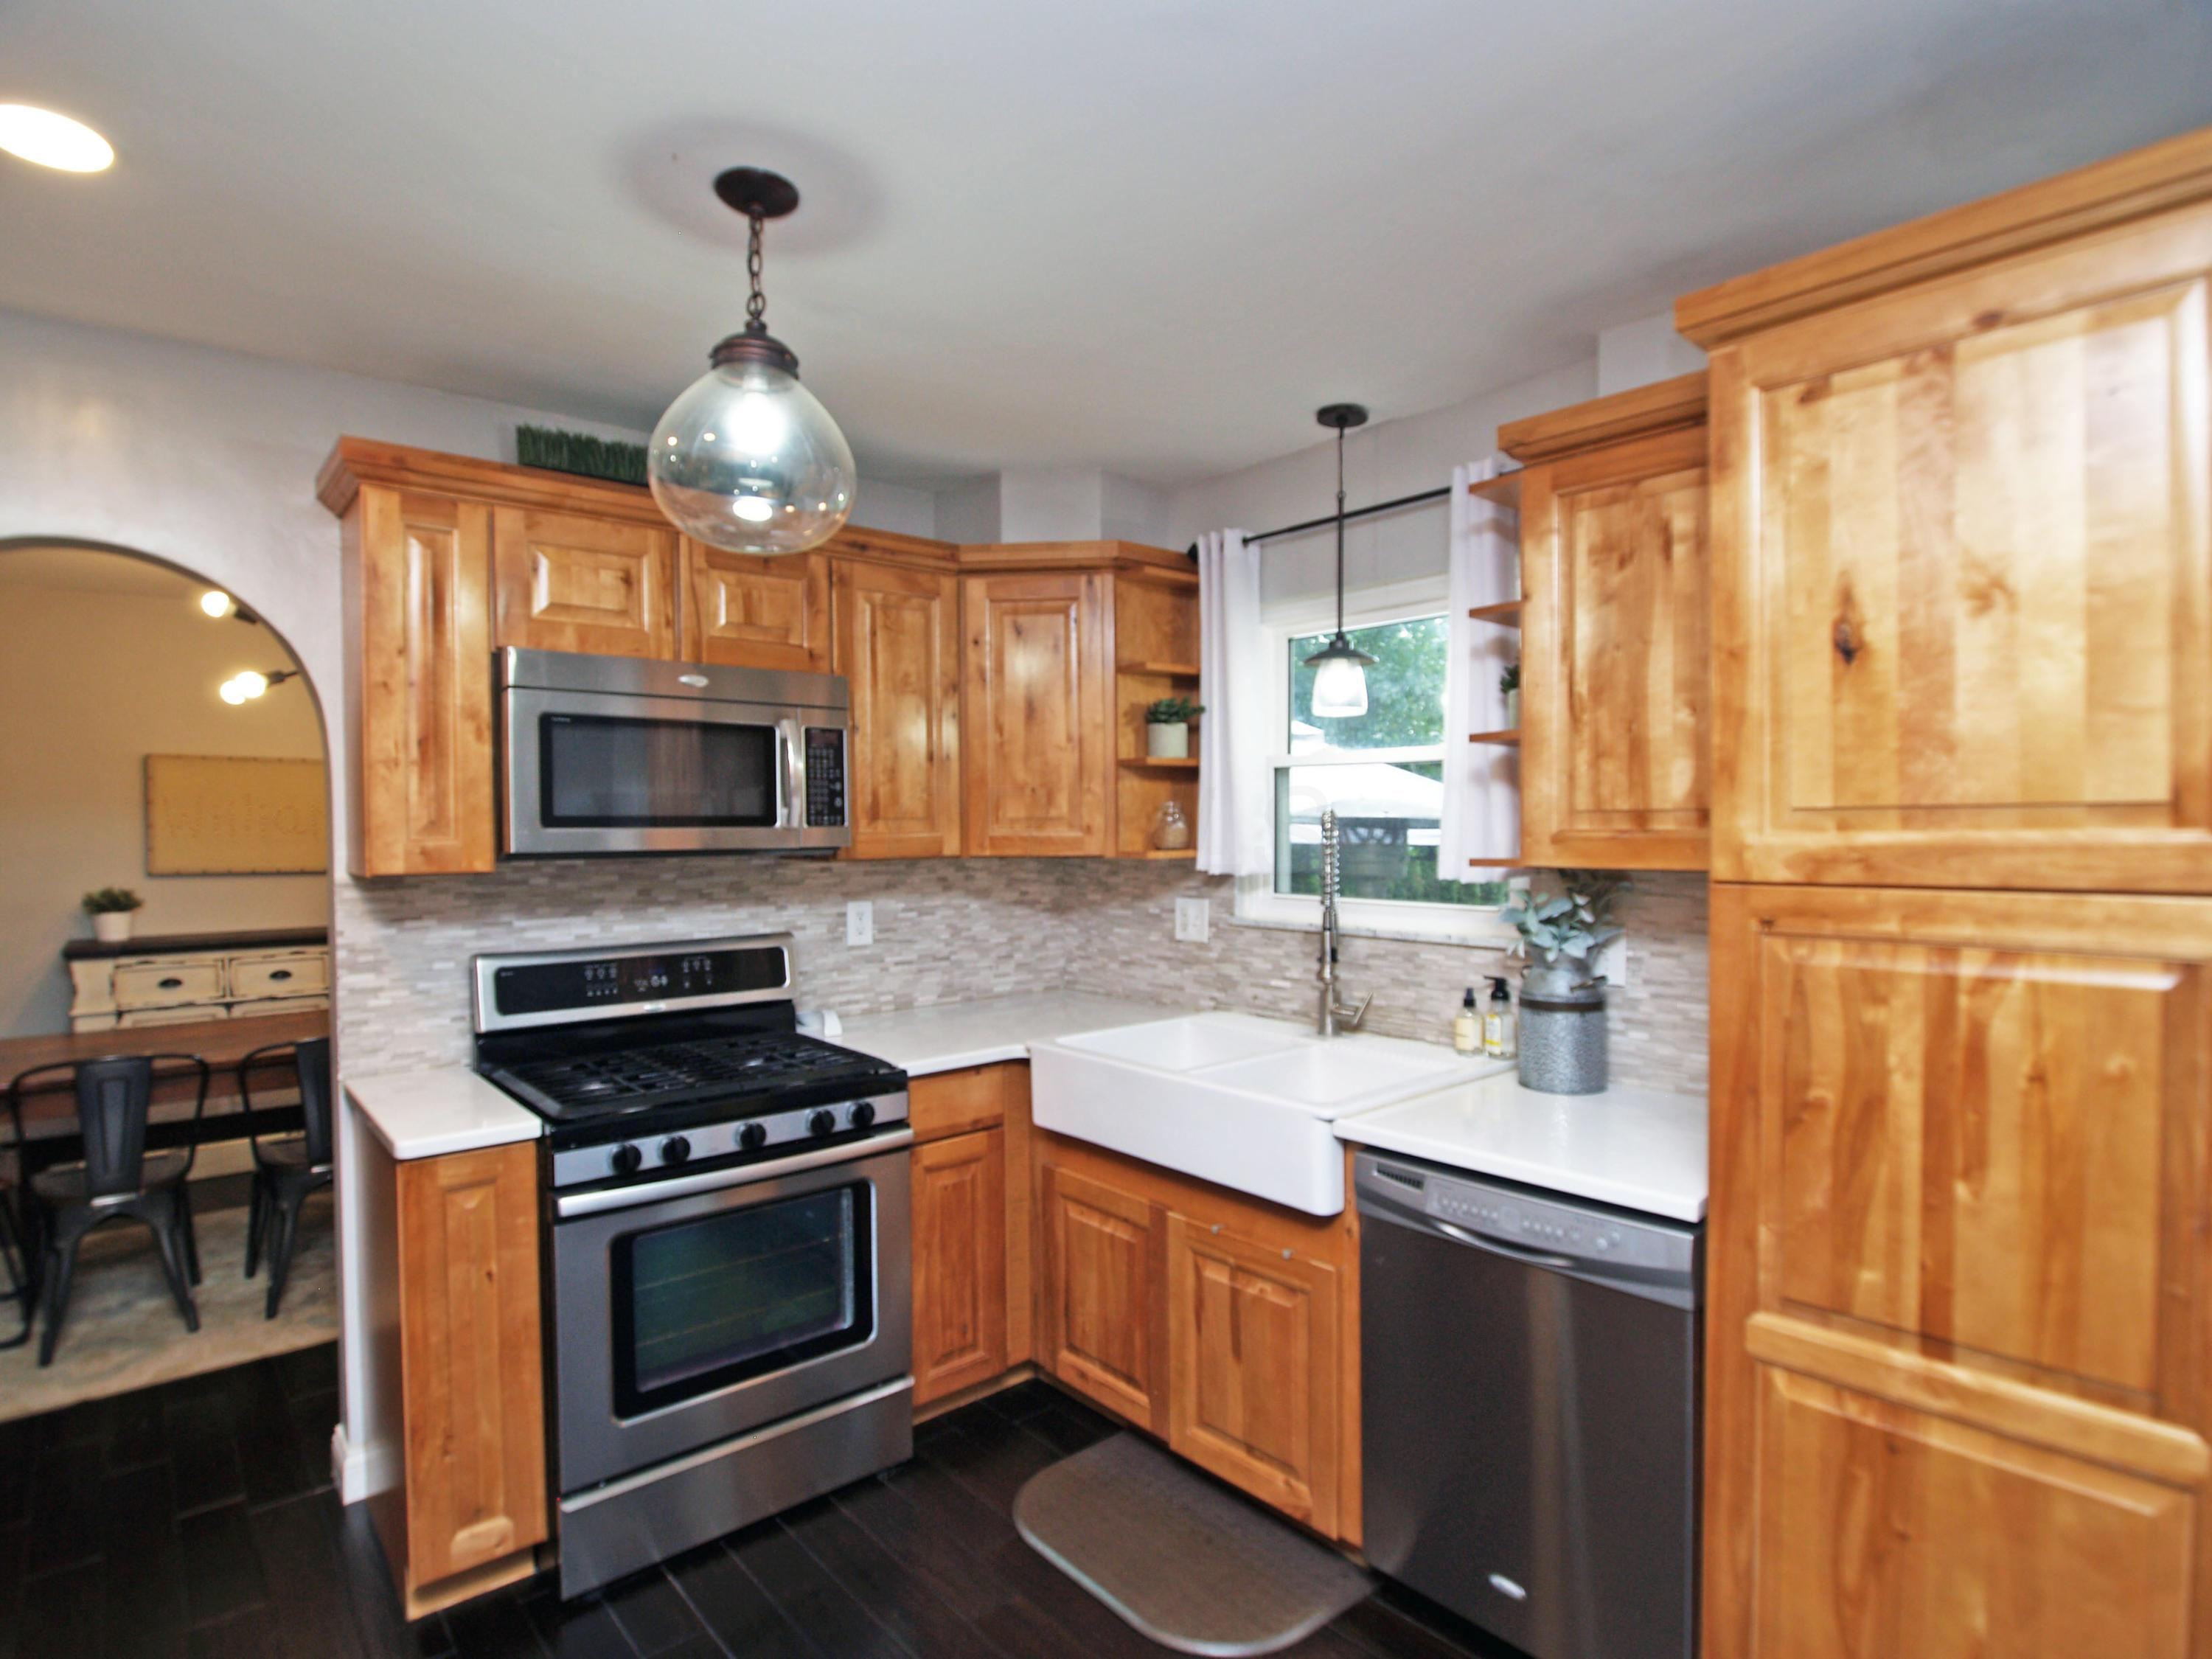 1379 Brenthaven Place, Columbus, Ohio 43228, 4 Bedrooms Bedrooms, ,3 BathroomsBathrooms,Residential,For Sale,Brenthaven,220032124